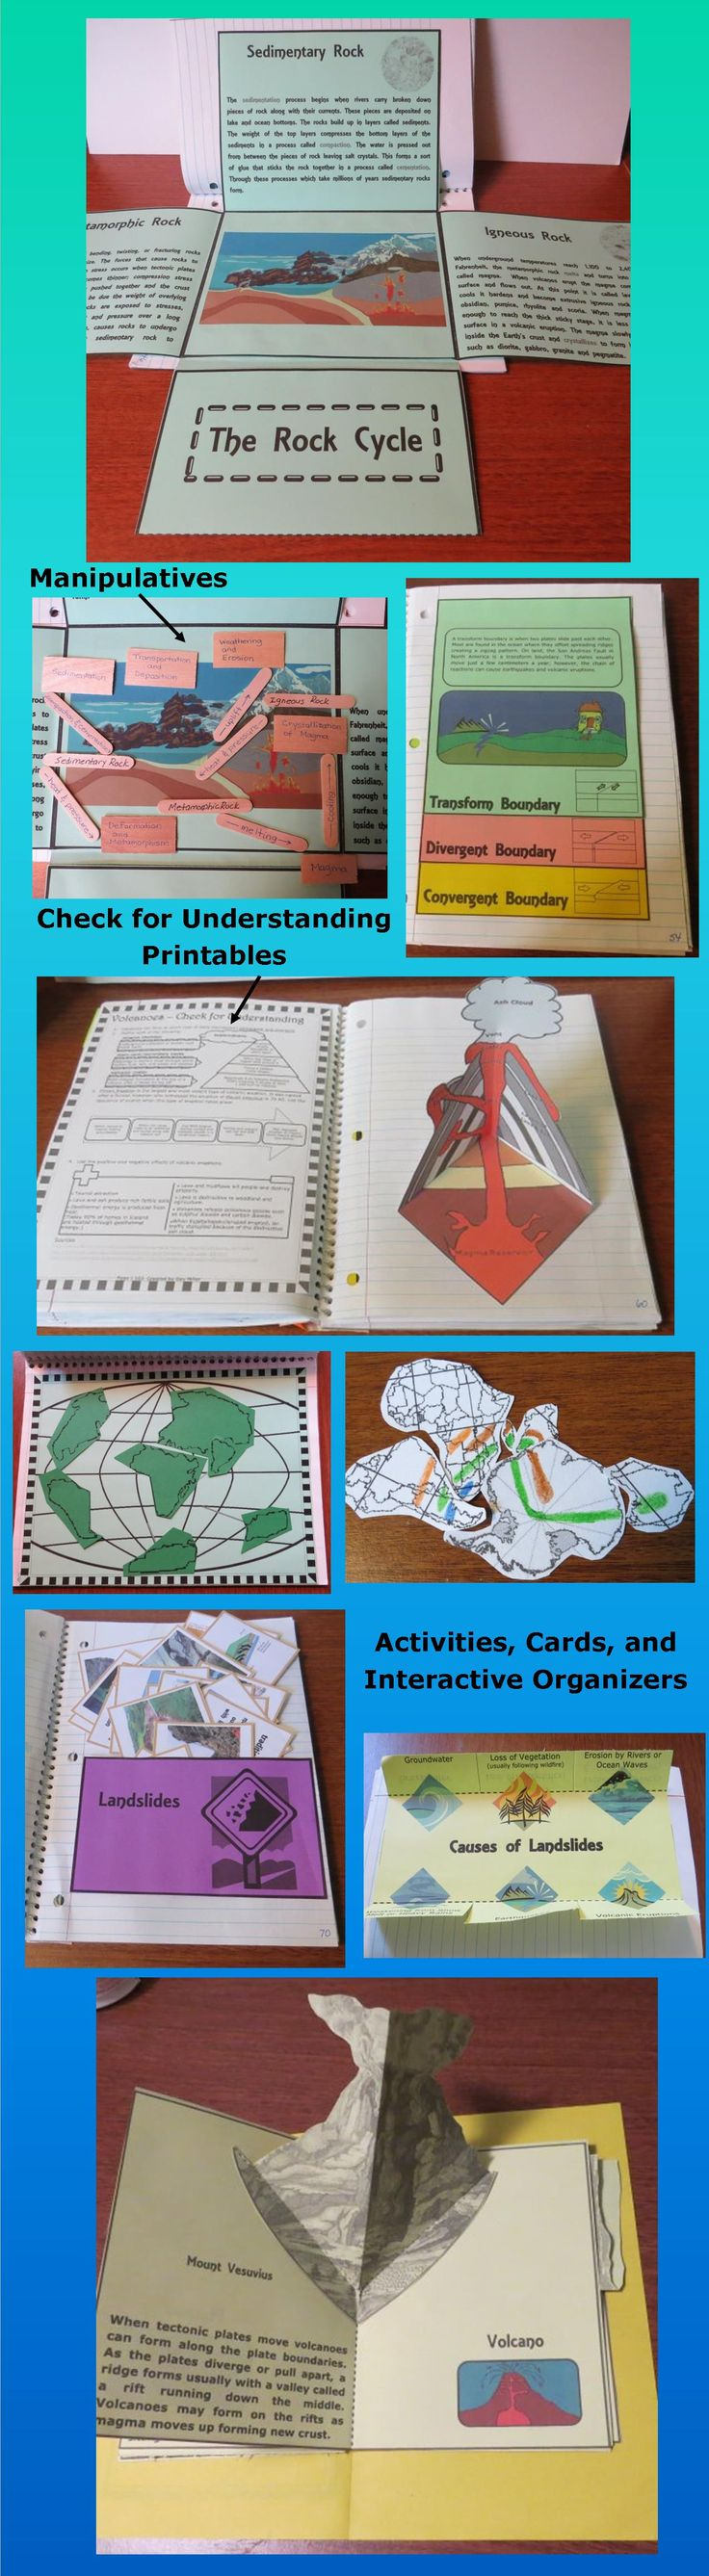 Earth's Systems Interactive Organizers contains everything you need to create interactive science notebooks for your geology unit. This 389 page resource is aligned to the Next Generation Middle School Earth and Space Science Standards, covering ESS2-1, ESS2-2, and ESS2-3. It aligns to many state science standards as well. $